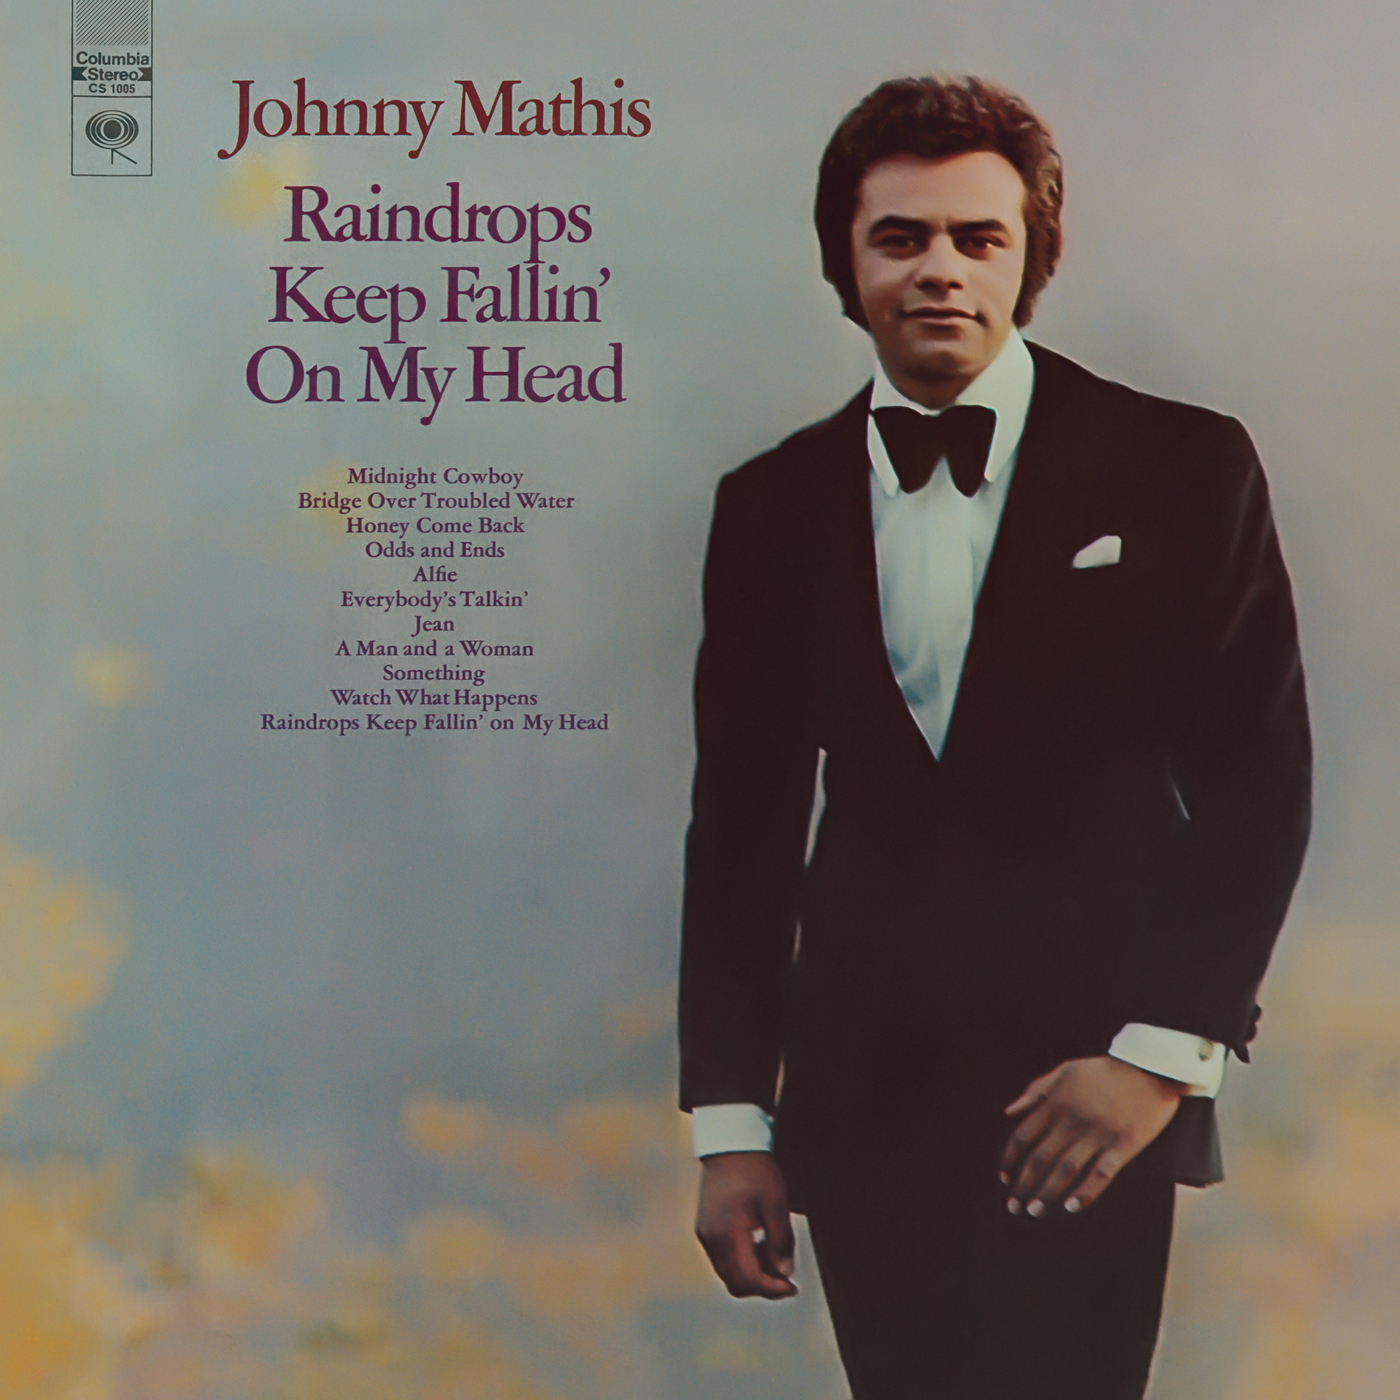 Raindrops Keep Fallin' On my Head' - Johnny Mathis